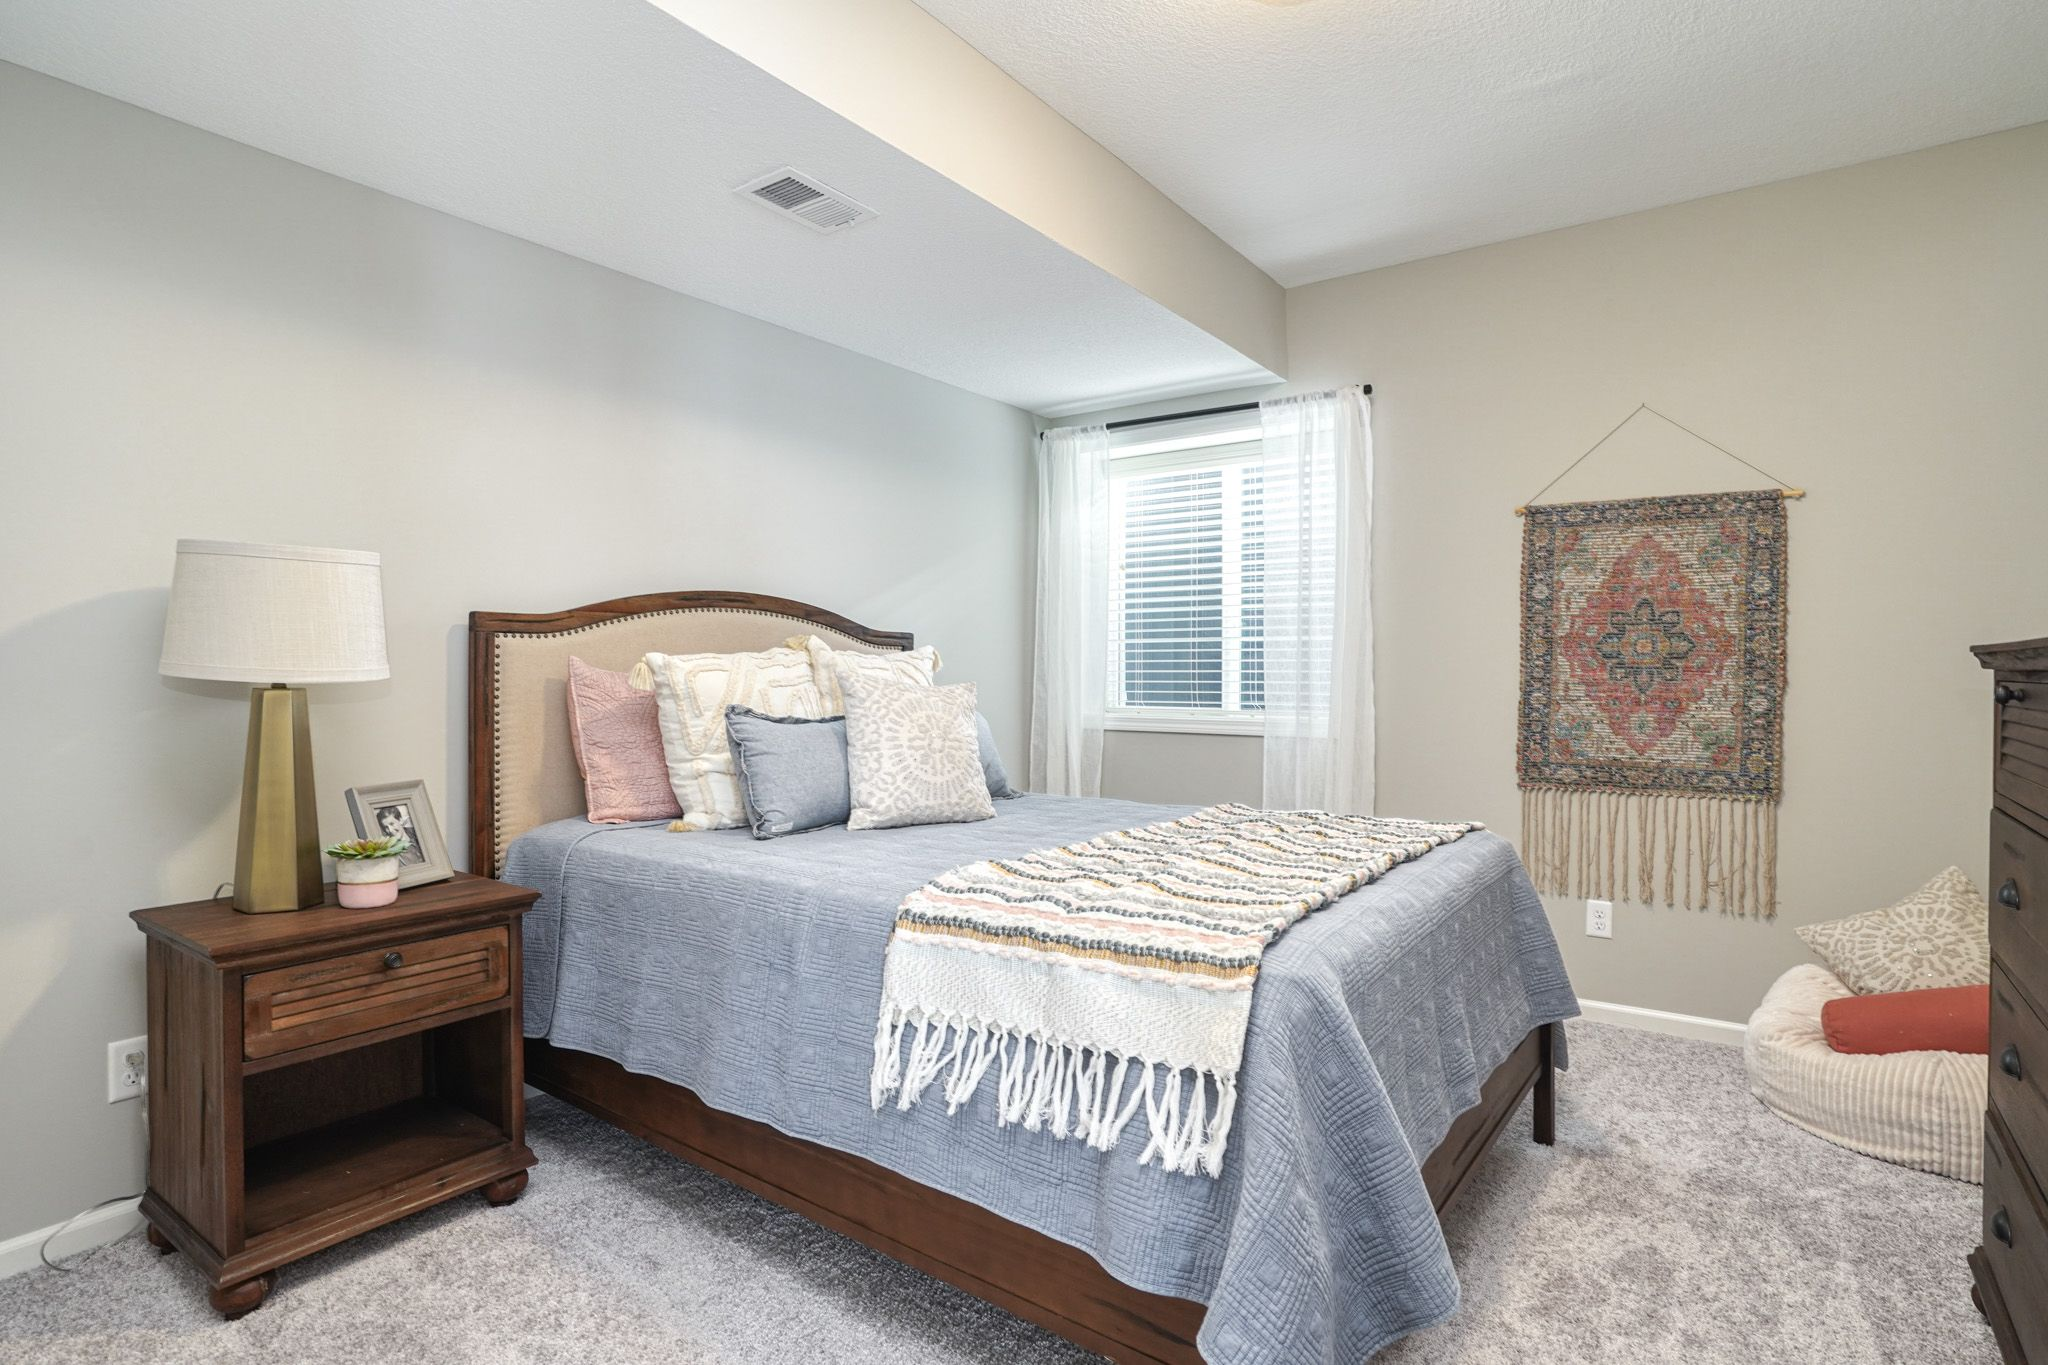 Bedroom featured in the Newhaven By Summit Homes in Kansas City, MO